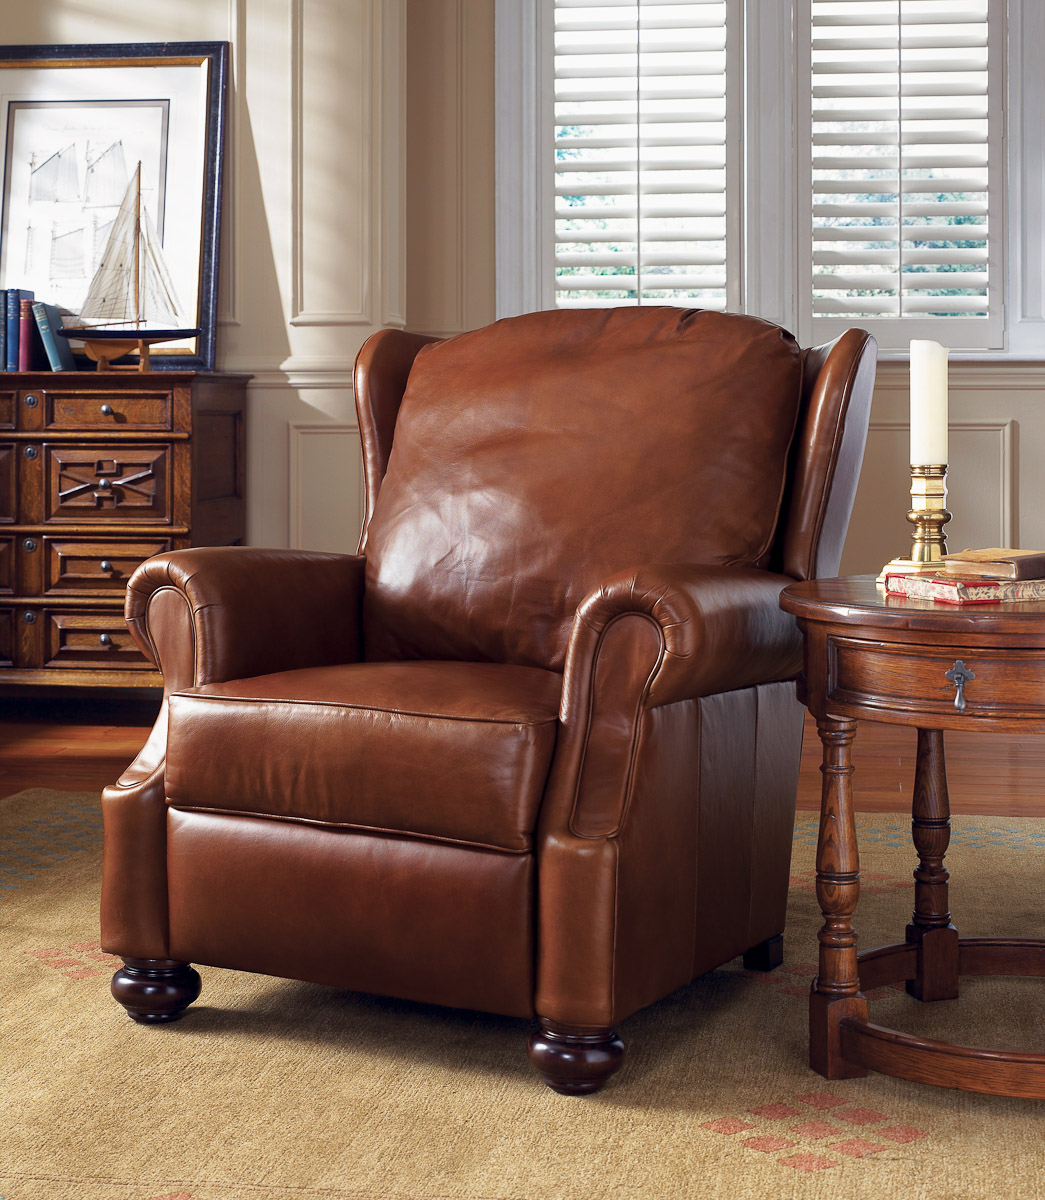 living room leather chairs kitchen on wheels swivel 2 furniture